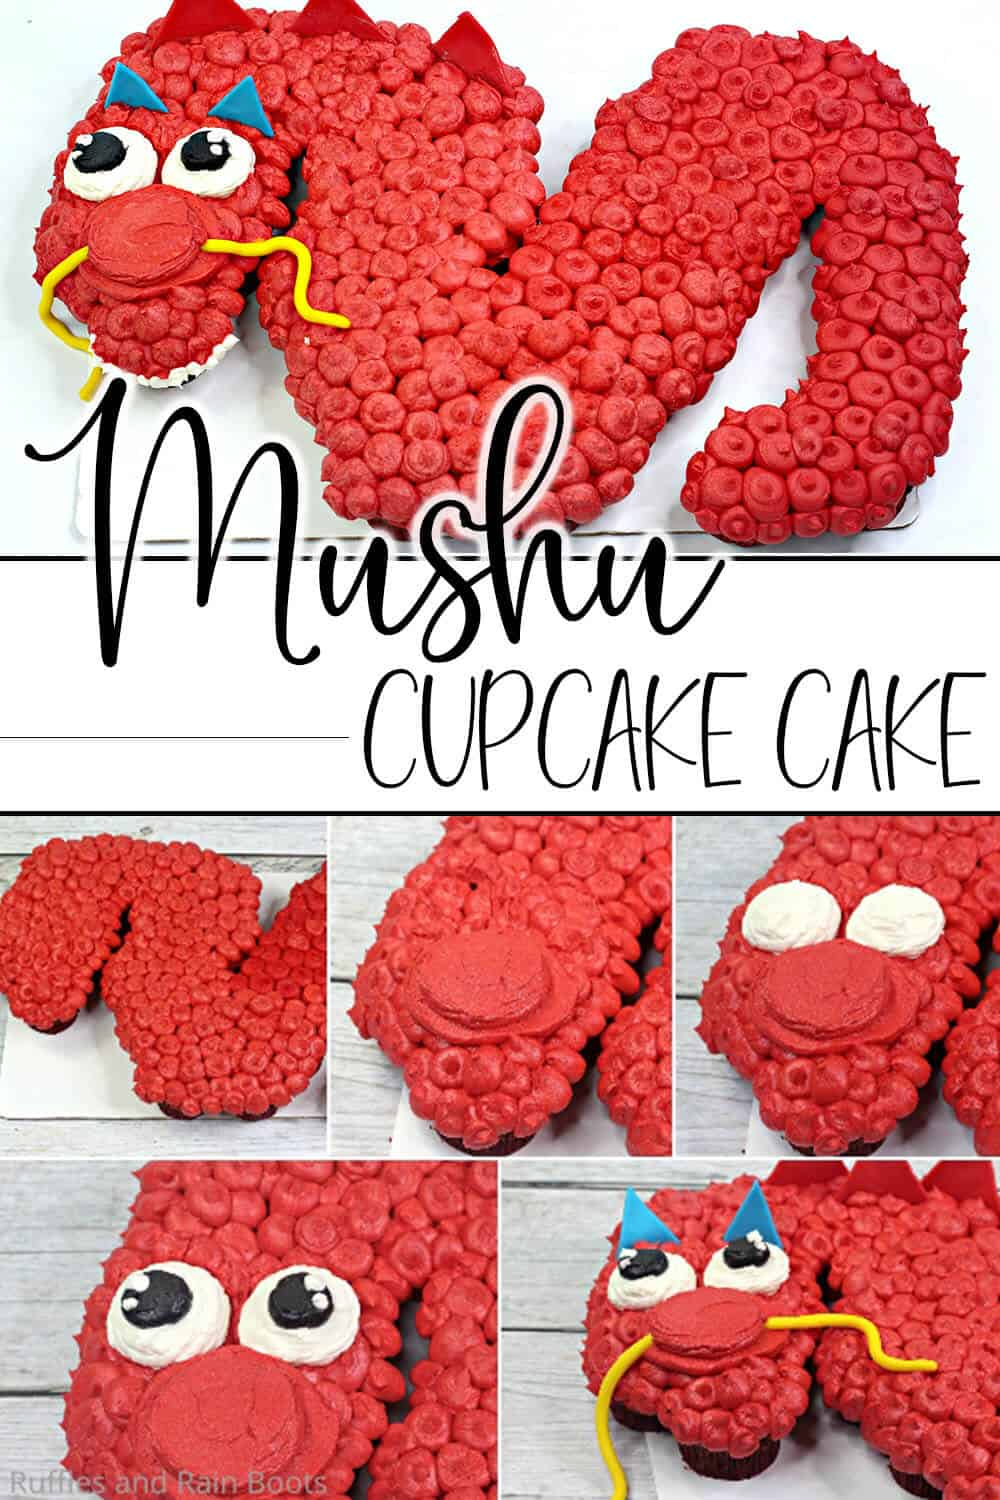 photo collage of easy cupcake cake decorating idea for dragon cupcake cake with text which reads mushu cupcake cake